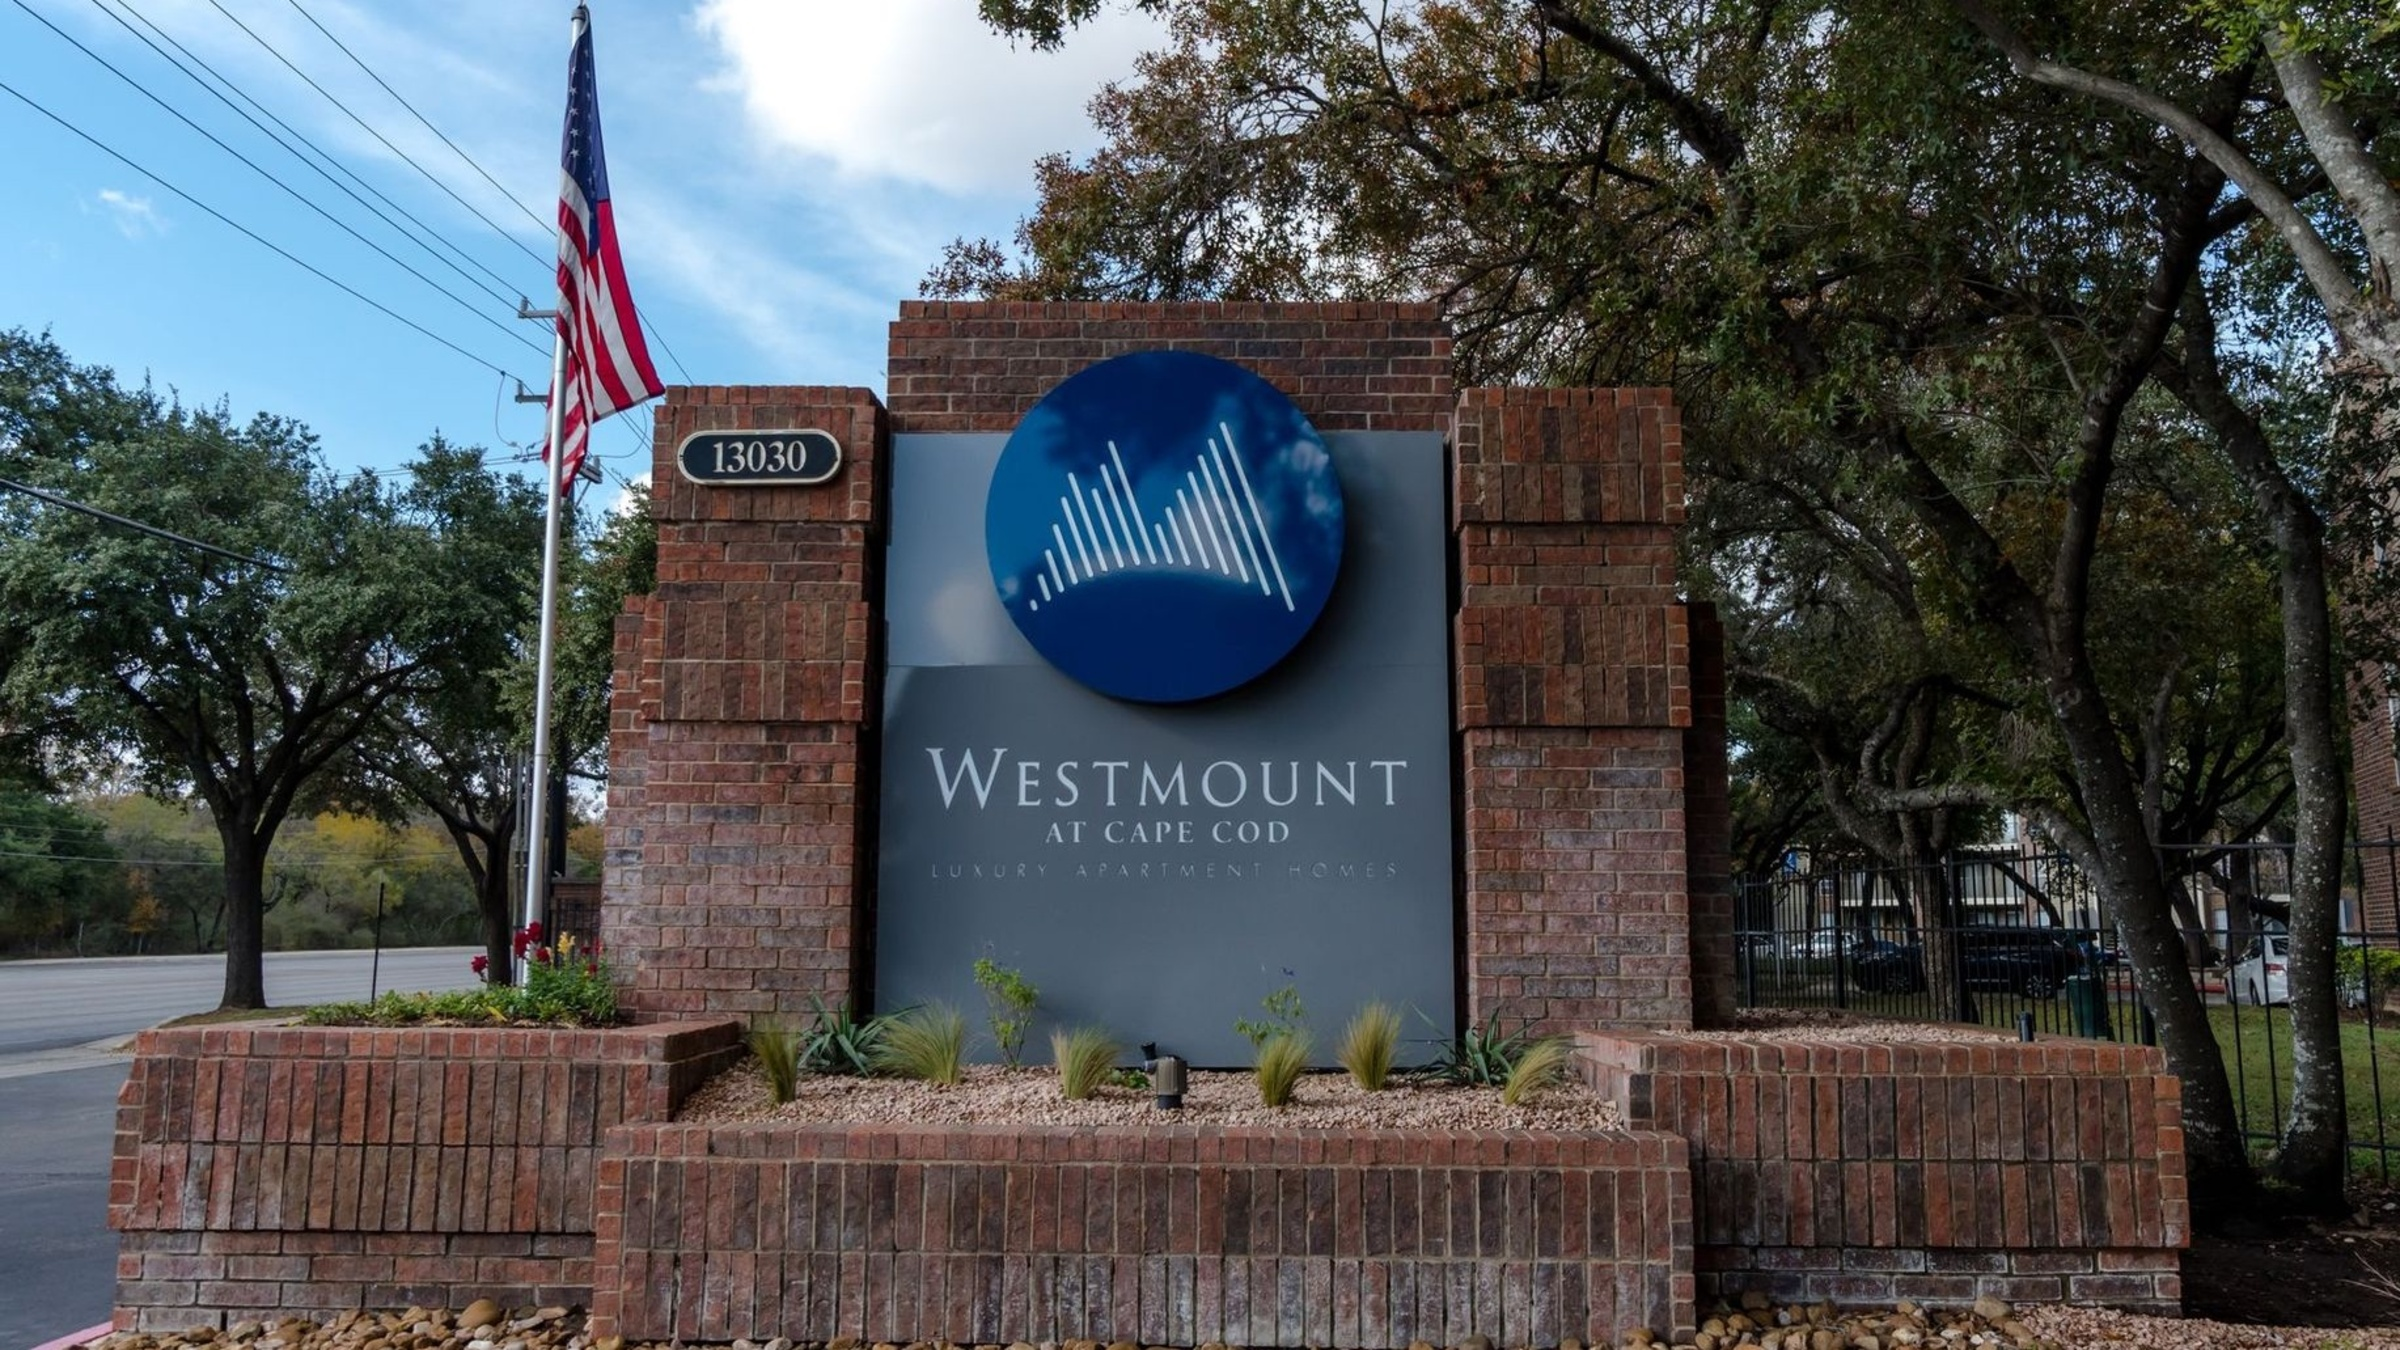 Westmount at Cape Cod 801